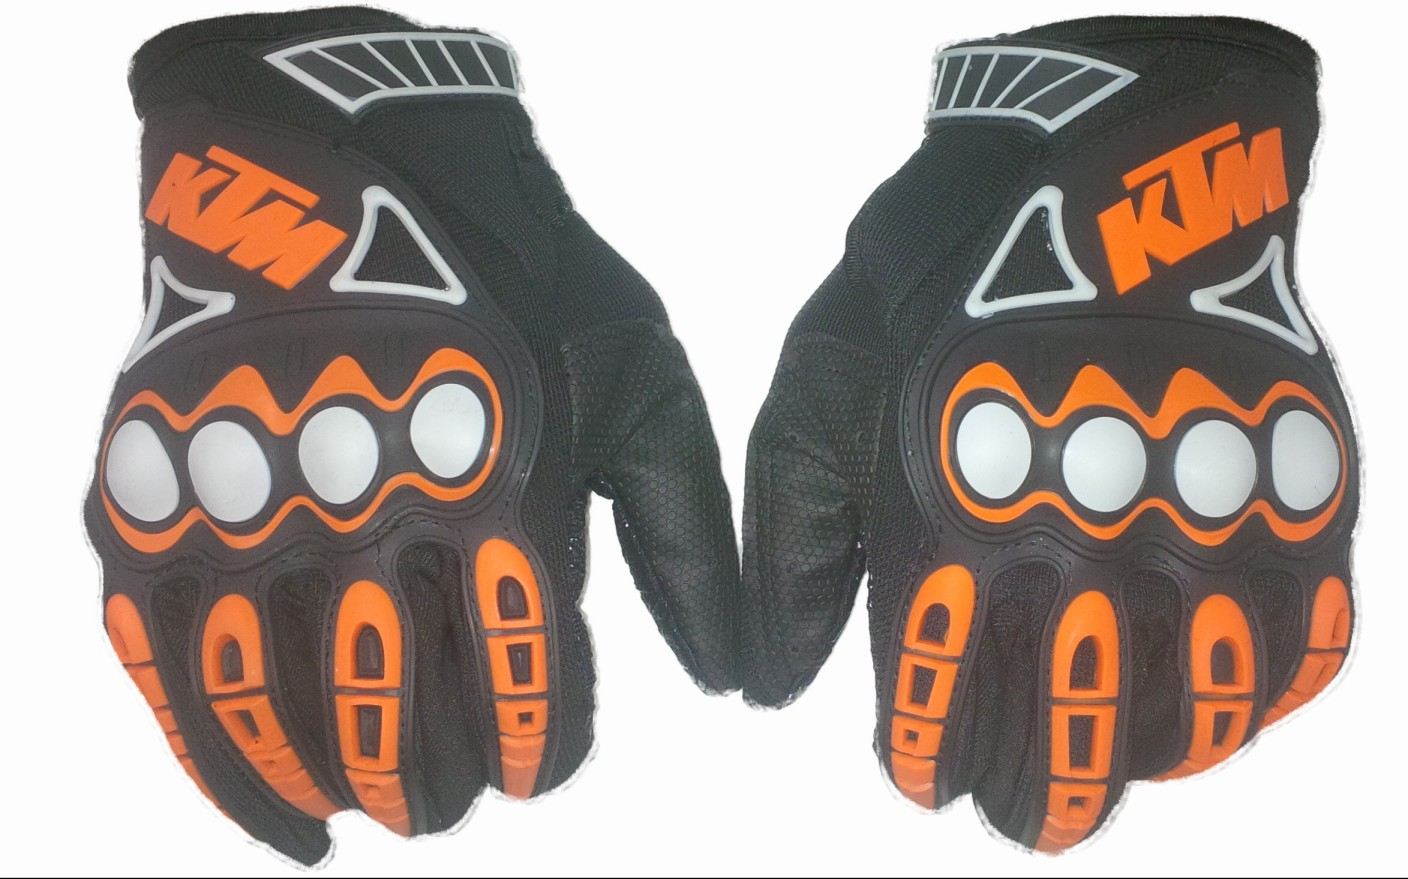 Motorcycle gloves bangalore - Rynox Inferno Motorcycle Gloves Review 7000 Kms Of Fun